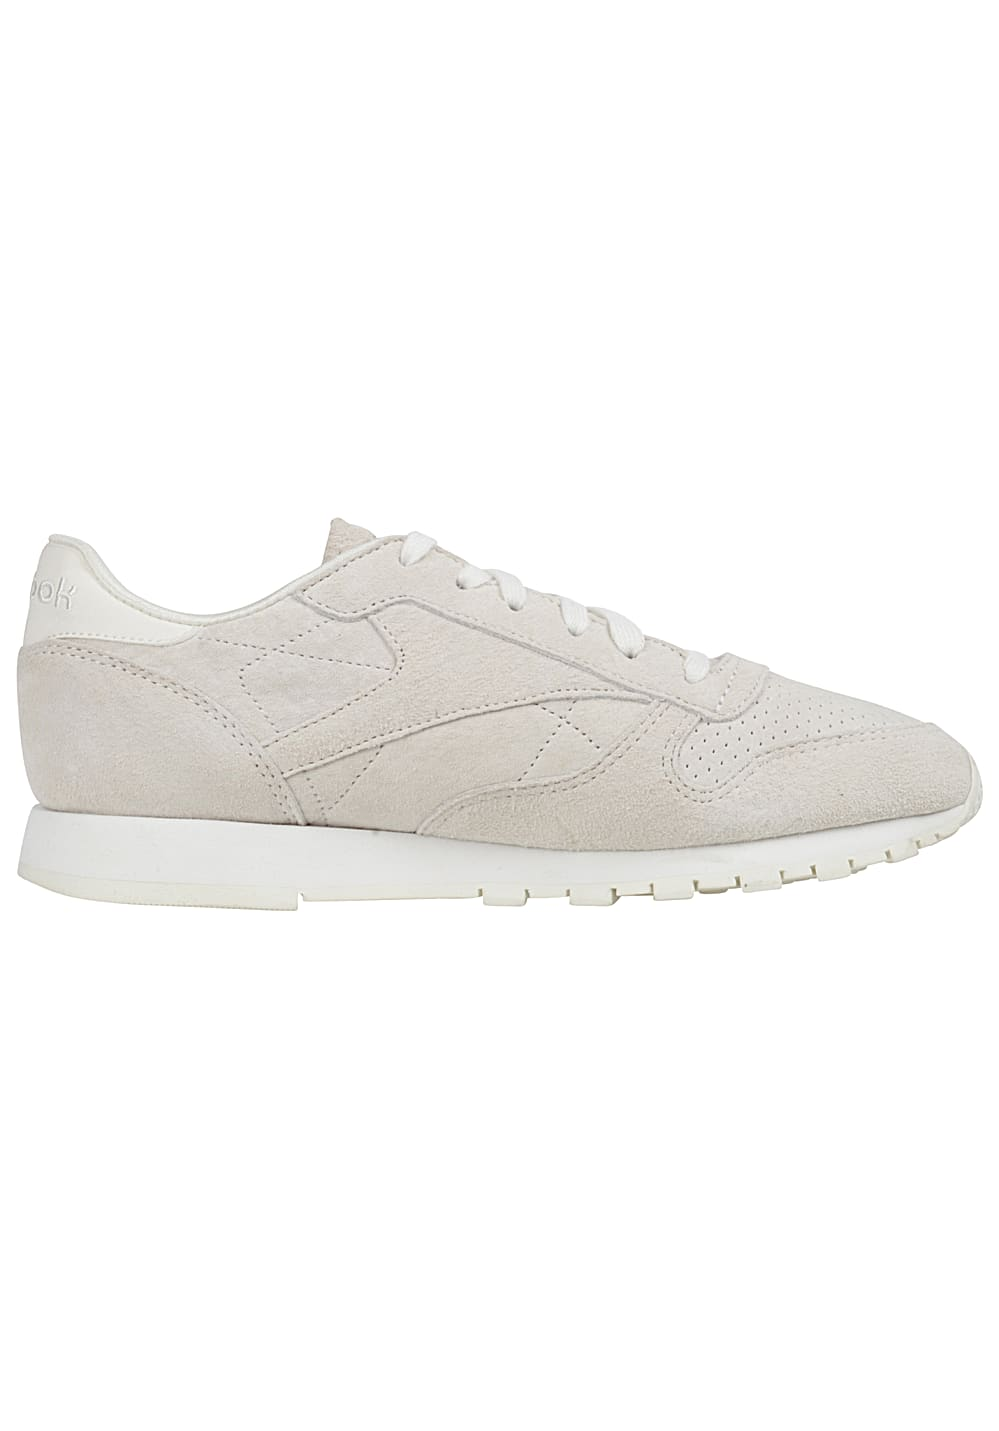 587c73d3666 Reebok Classic Lthr Nbk - Sneakers for Women - Beige - Planet Sports